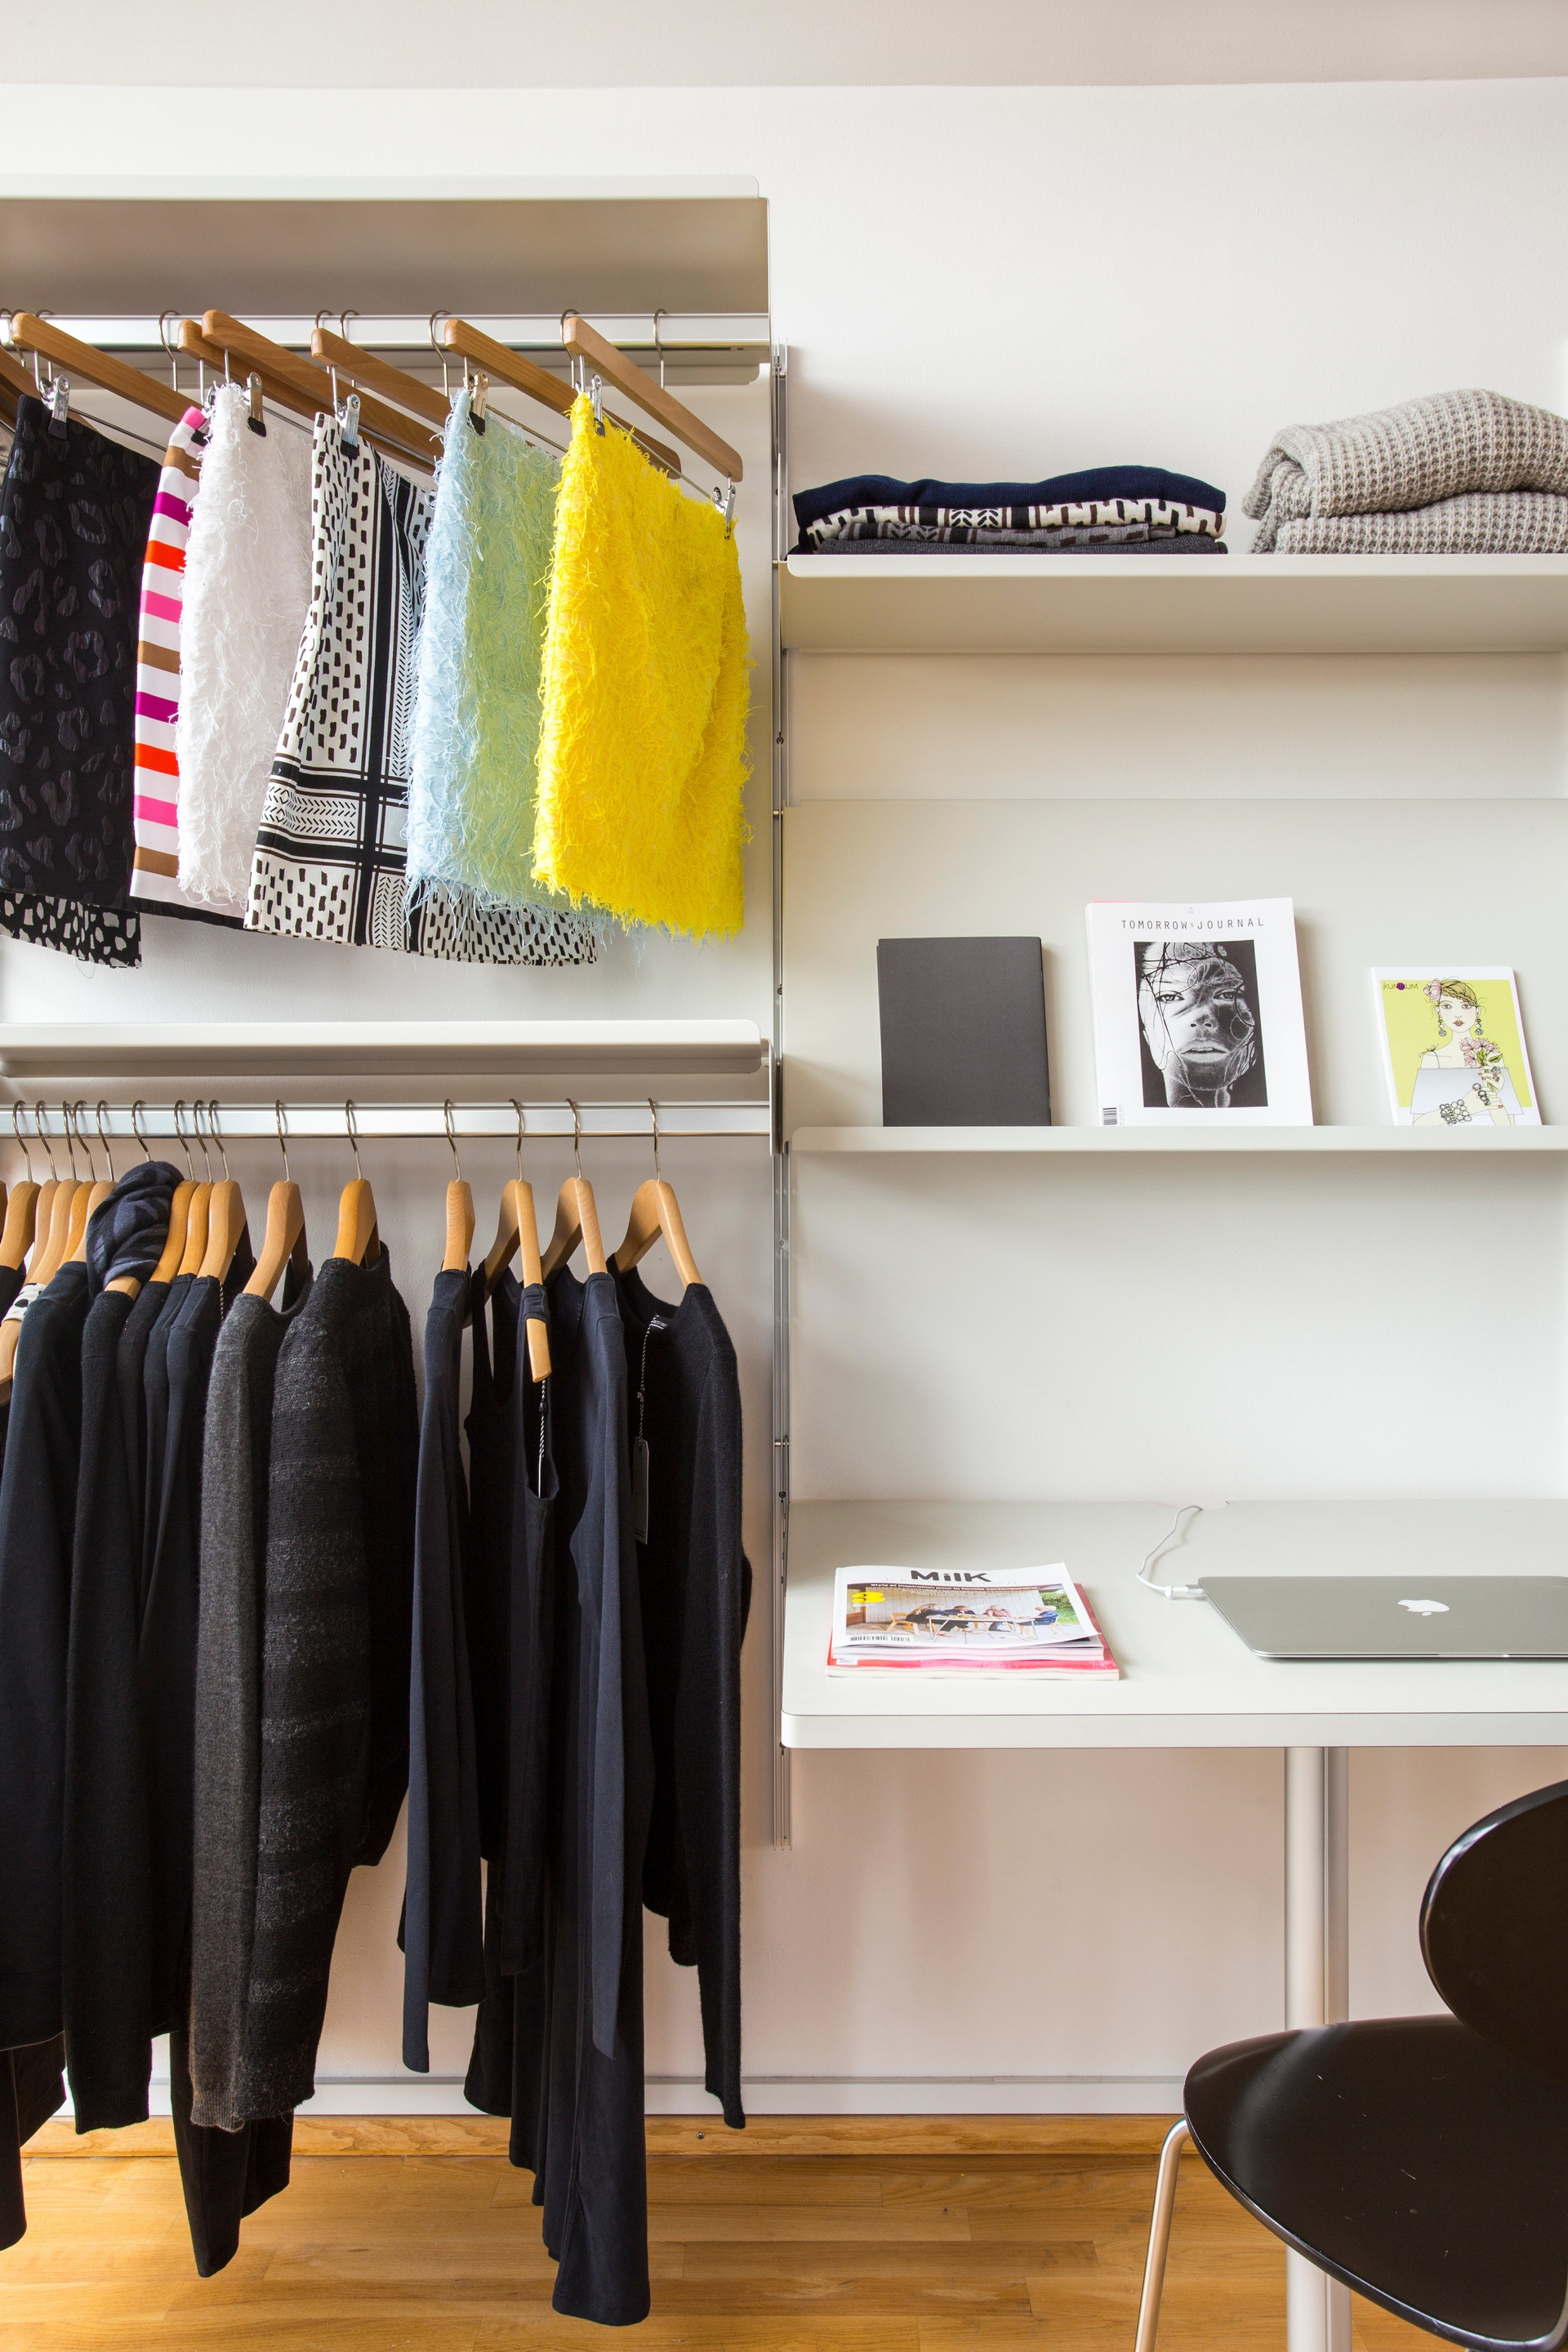 Teenage bedroom or fashion showroom? Our adaptable shelving system has no preference.  See more shelving for shops